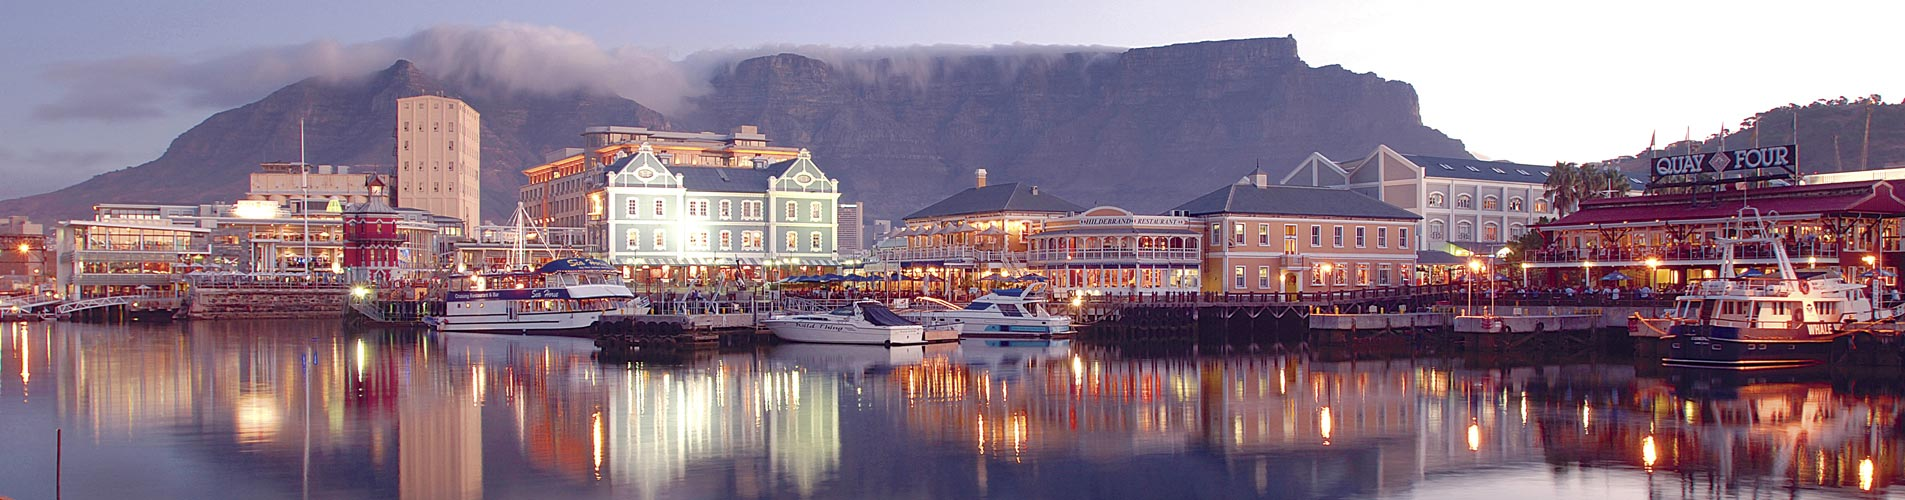 Victoria Alfred Waterfront, Cape Town, South Africa